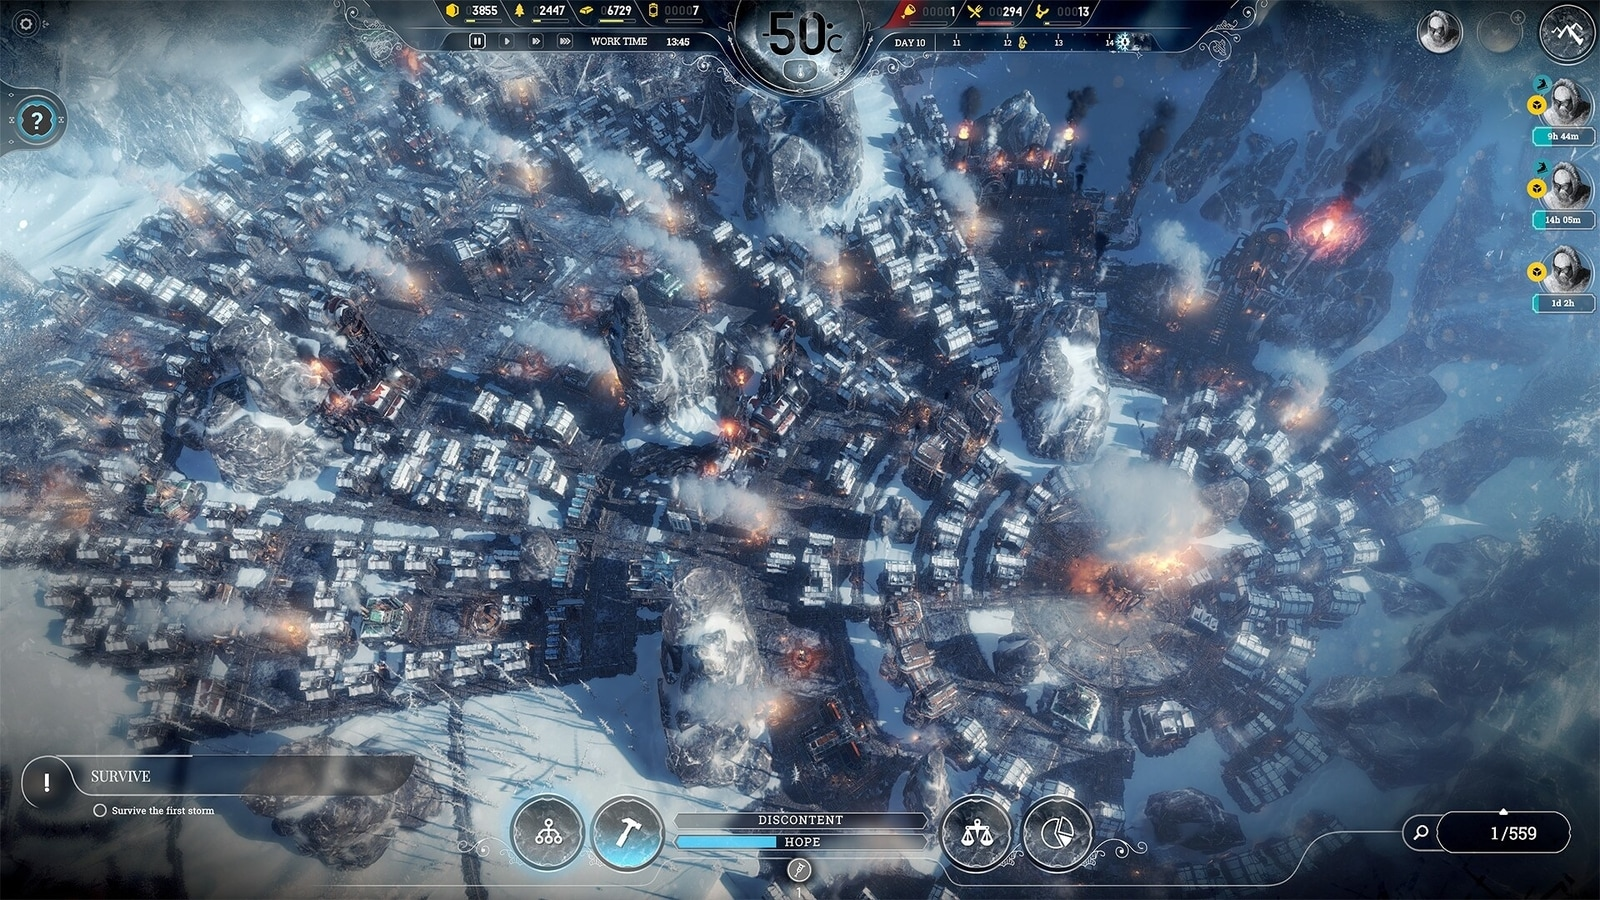 After doing it for us, the Frostpunk Dystopia Survival game is free for a week at the Epic Games Store